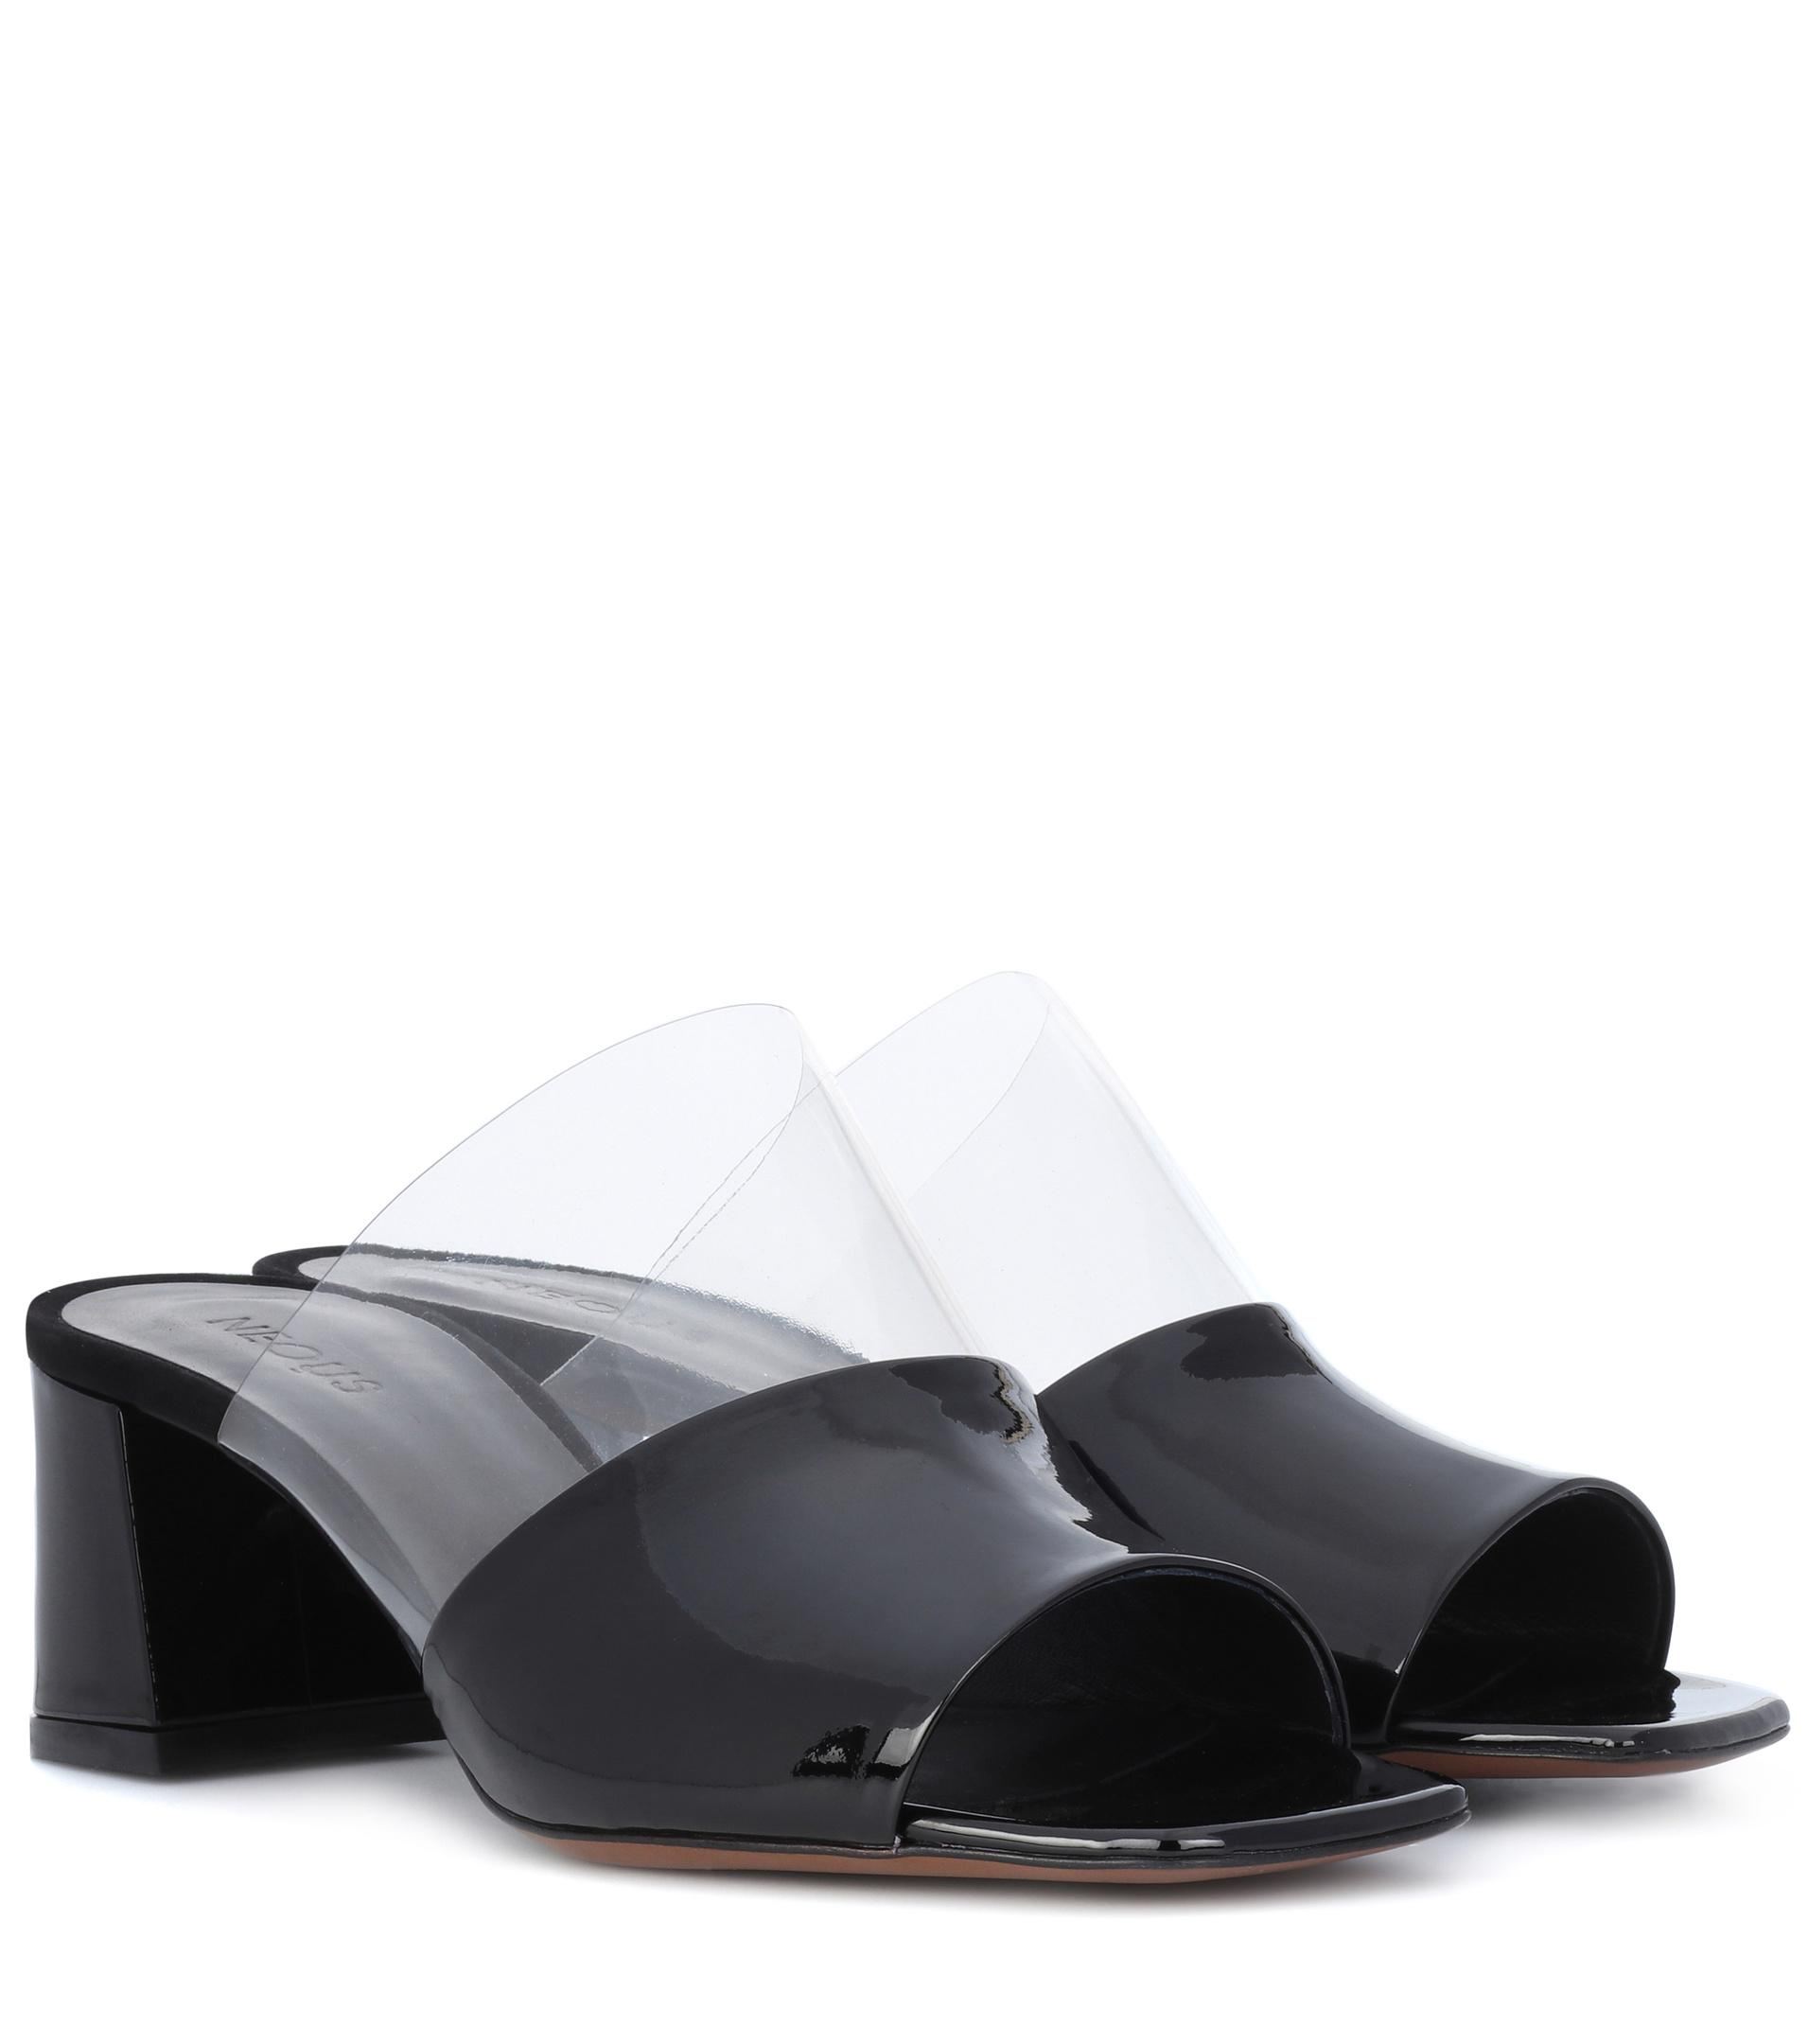 Chost Perspex and Leather Sandals Neous cklVPpT6